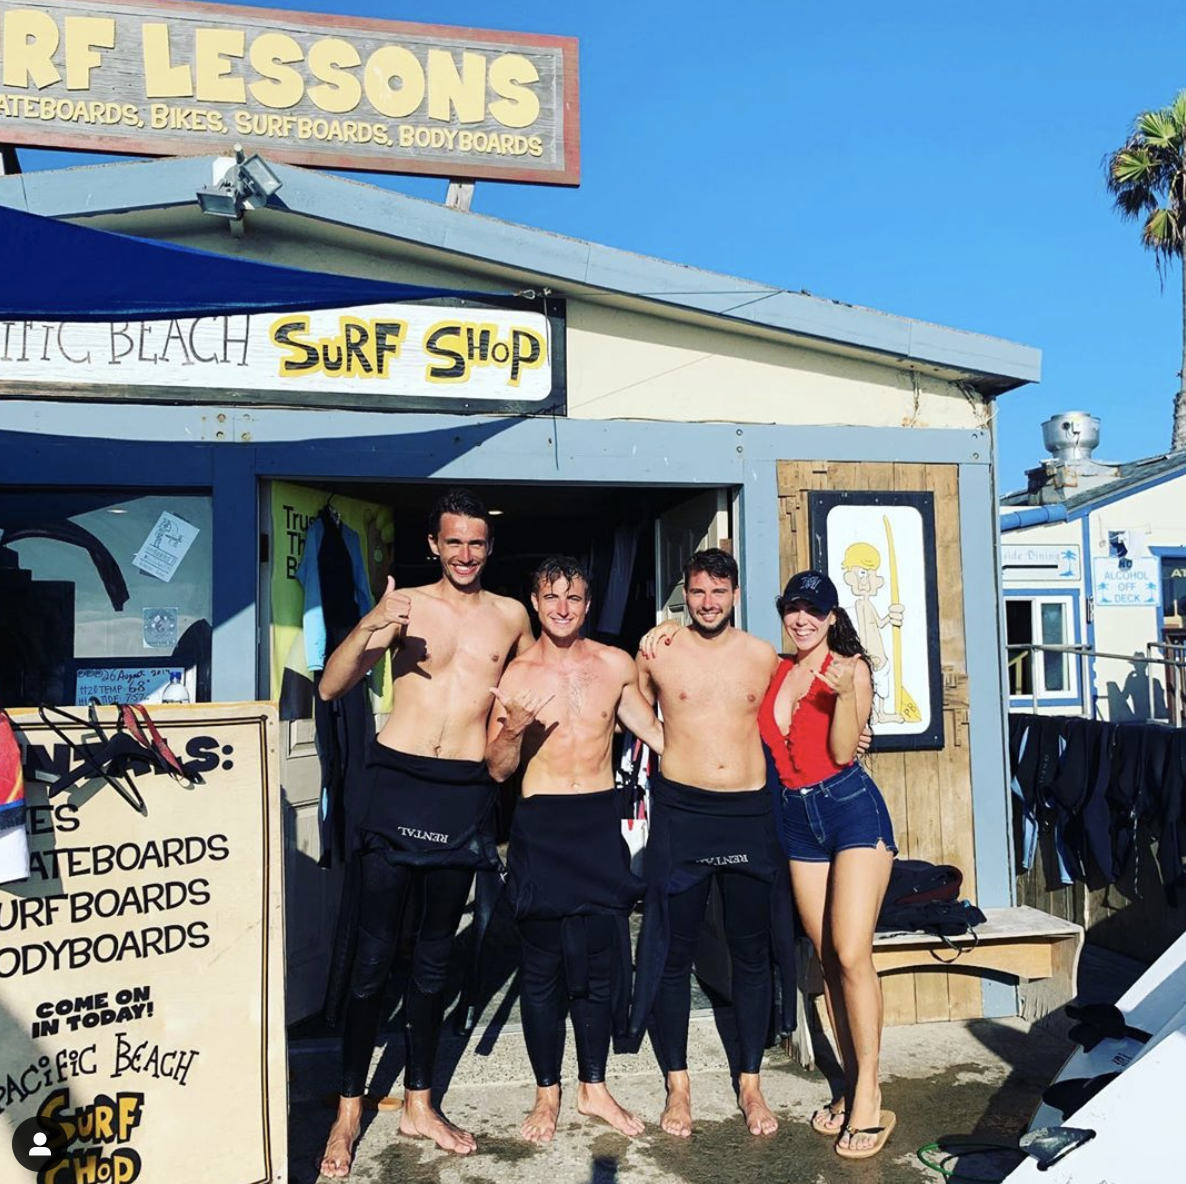 surf lesson san diego, girls surf camp, surf lessons in san diego, surf lessons san diego, san diego surfing lessons, california surf lessons, surfing exercises, california surf school, learn to surf san diego, san diego surf lessons, surfing lessons in san diego, surfing school, best surf lessons san diego, surf schools, surf camp san diego, overnight surf camps, surf classes, surf lesson california, surf lessons, surf training, types of surfboards, california surf camp, surf tables, girls surf, surf class, surf report san diego, surfboard rentals, surfing in san diego, Surf Schools near me, san diego surf report, surfing boards, san diego surfing, surfing camp, surf school, surfing san diego, surf camp, night surf, surf lesson, san diego surf, surfing lessons near me, shaun tom-son, surfer girls, surfing camps, learn to surf, surf camps, surf pictures, surfing board, surfboard rental, surf girls, paddle school